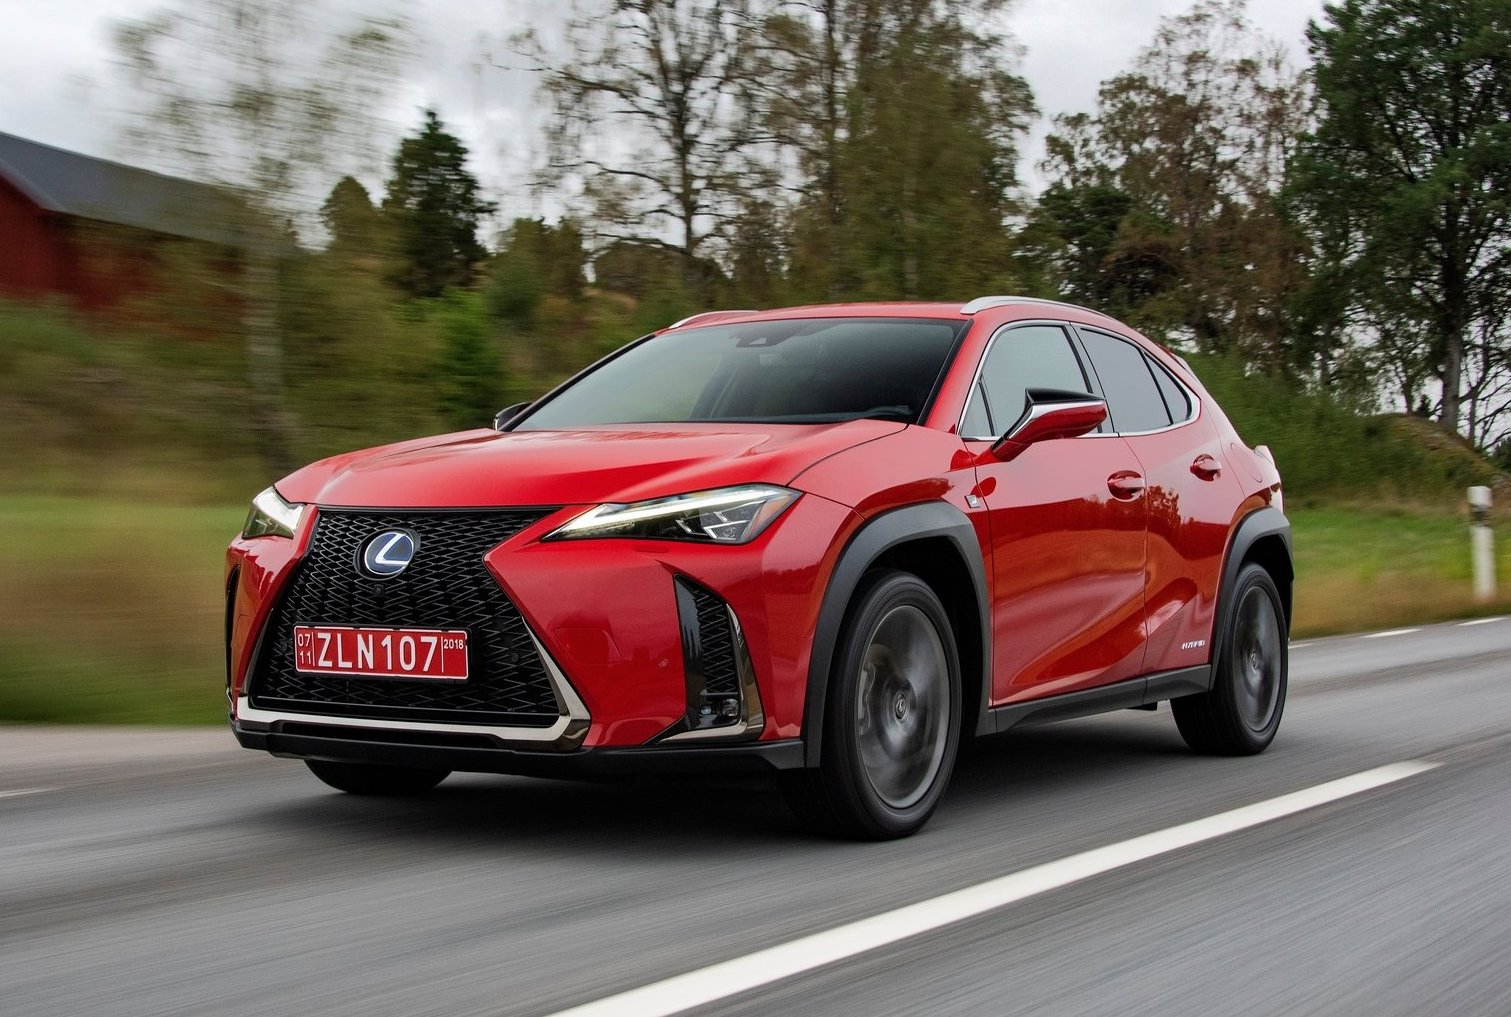 2019 Lexus UX officially launches in 200 & 250h form | PerformanceDrive